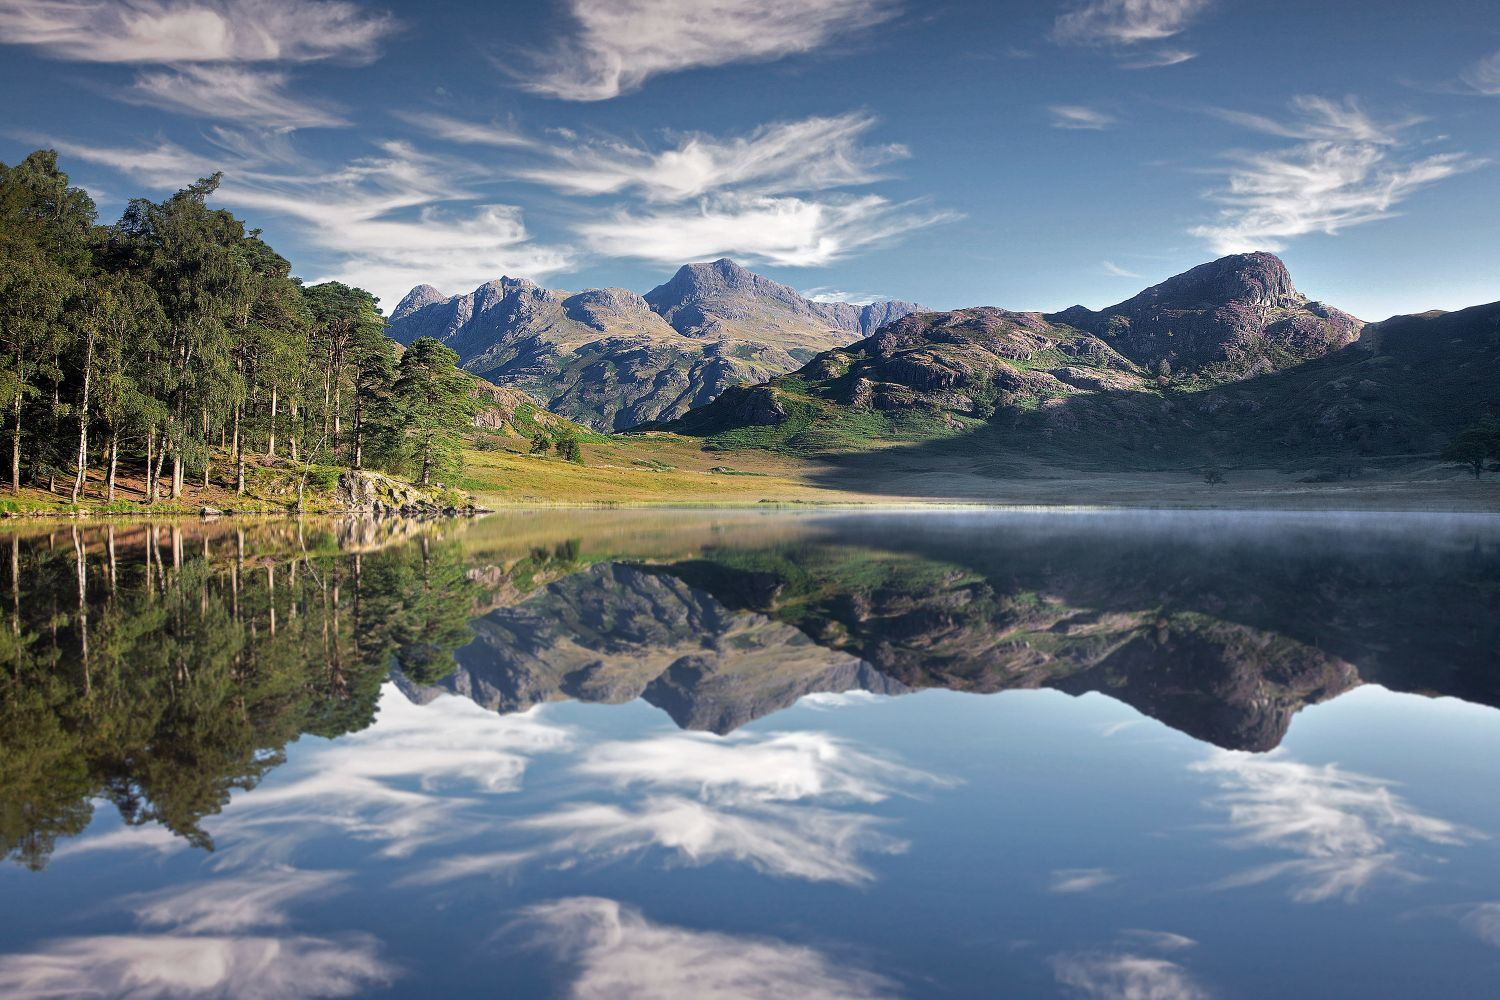 Dancing clouds above The Langdales and Blea Tarn by Martin Lawrence